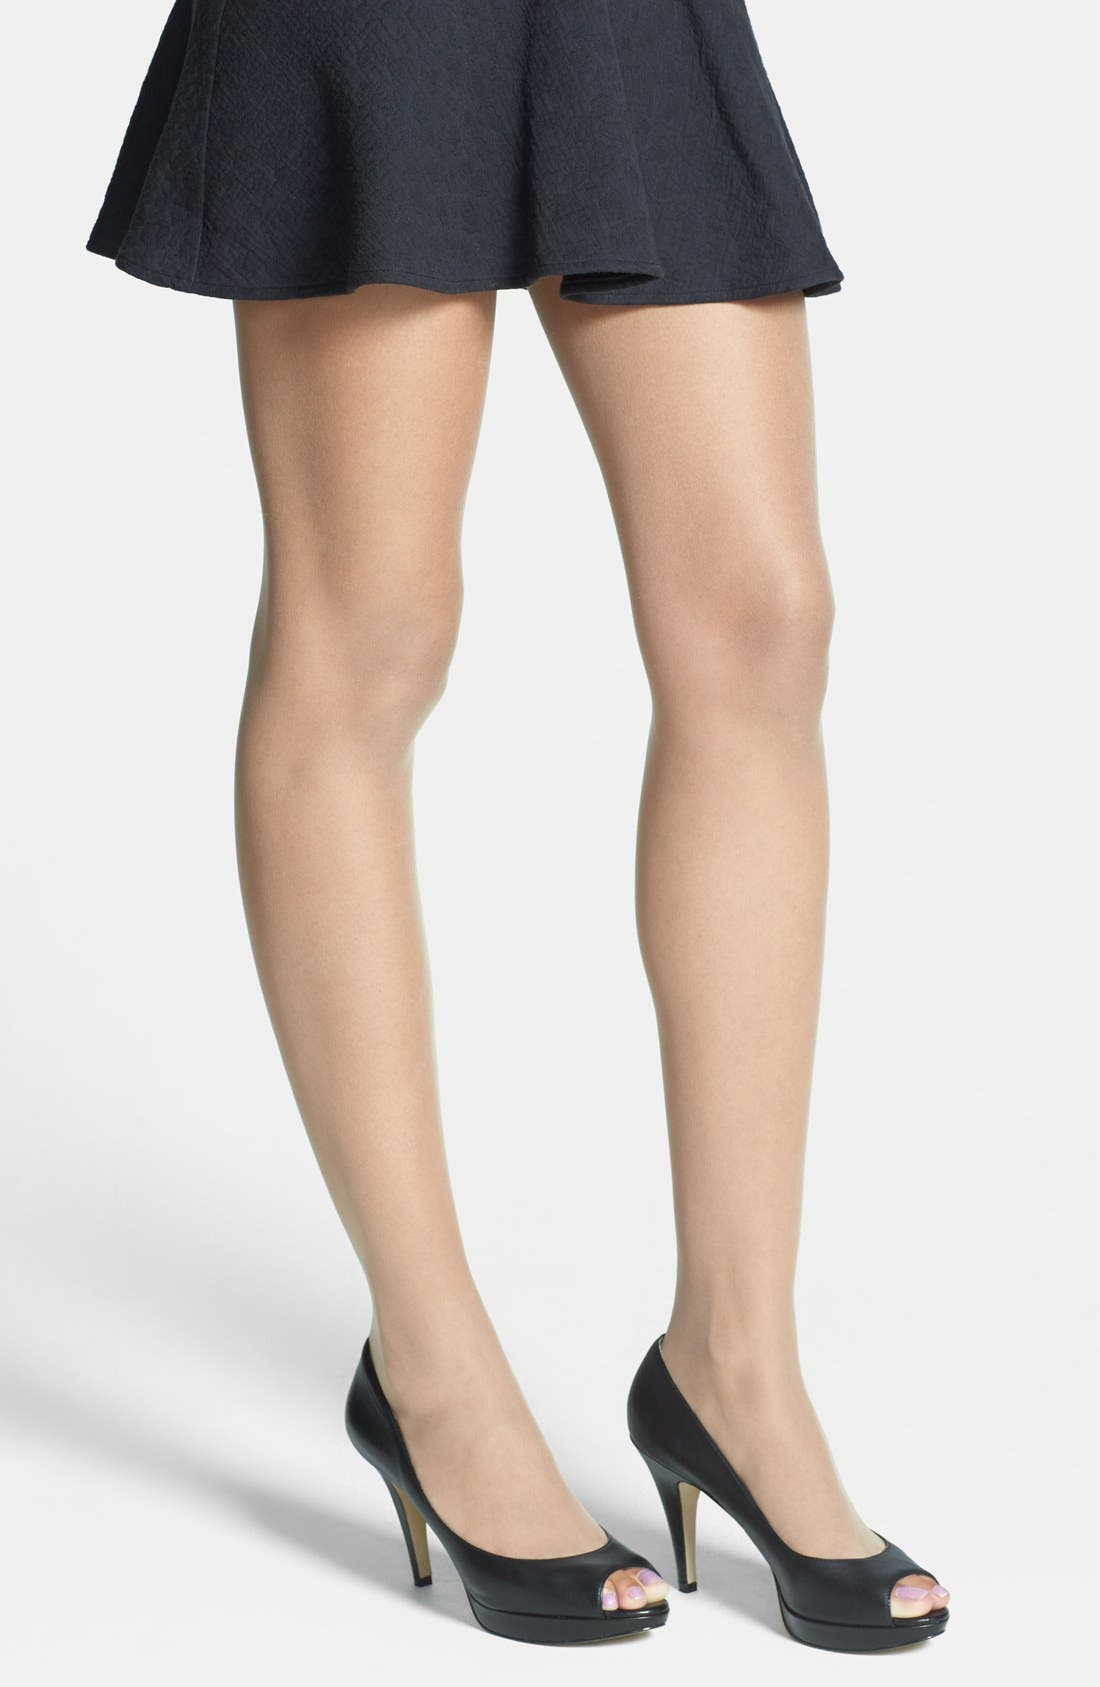 Alternate Image 1 Selected - Wolford 'Luxe 9' Toeless Tights